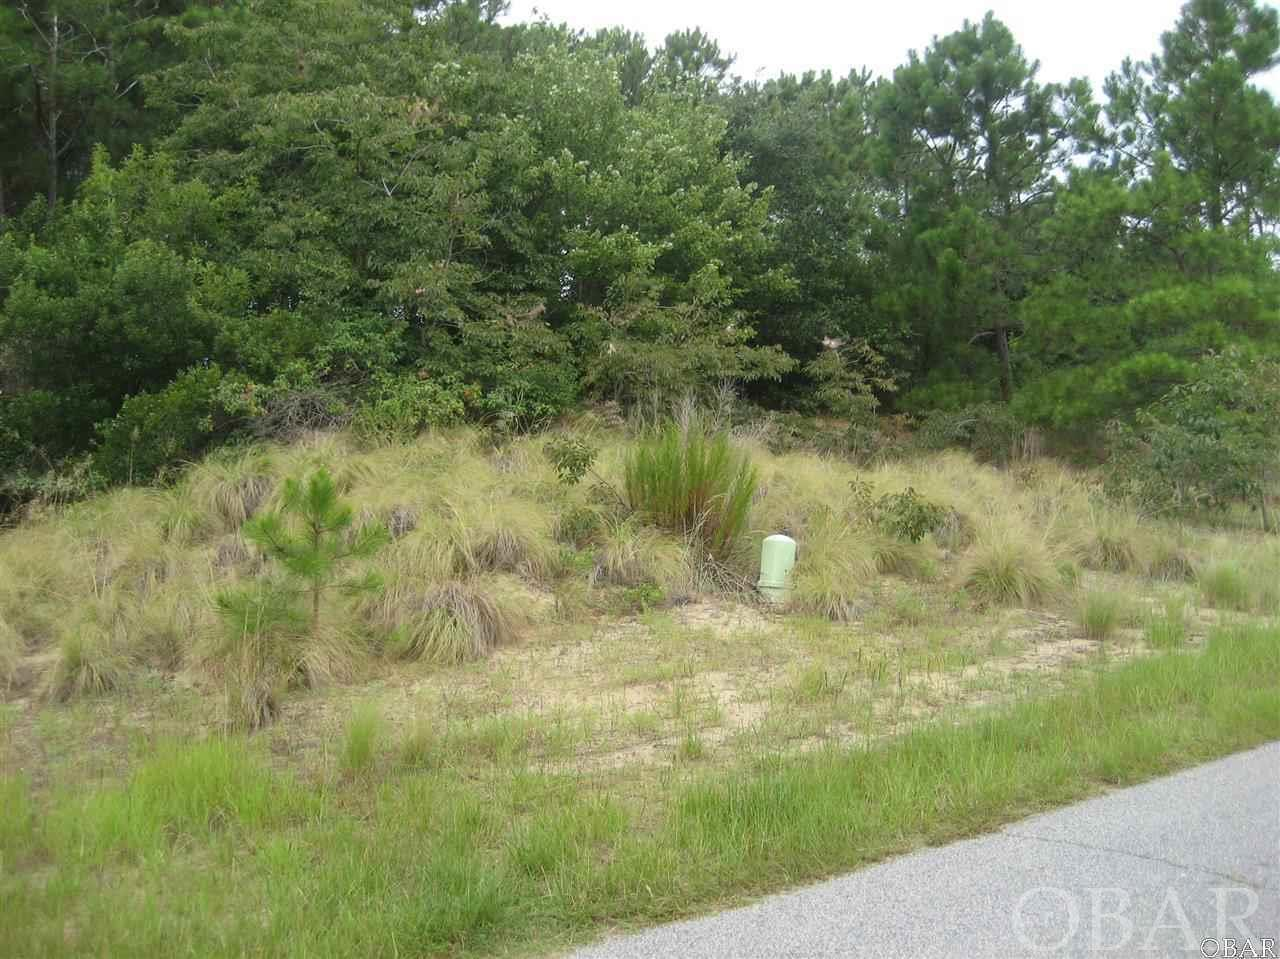 1060 Corolla Drive, Corolla, NC 27927, ,Lots/land,For sale,Corolla Drive,101546